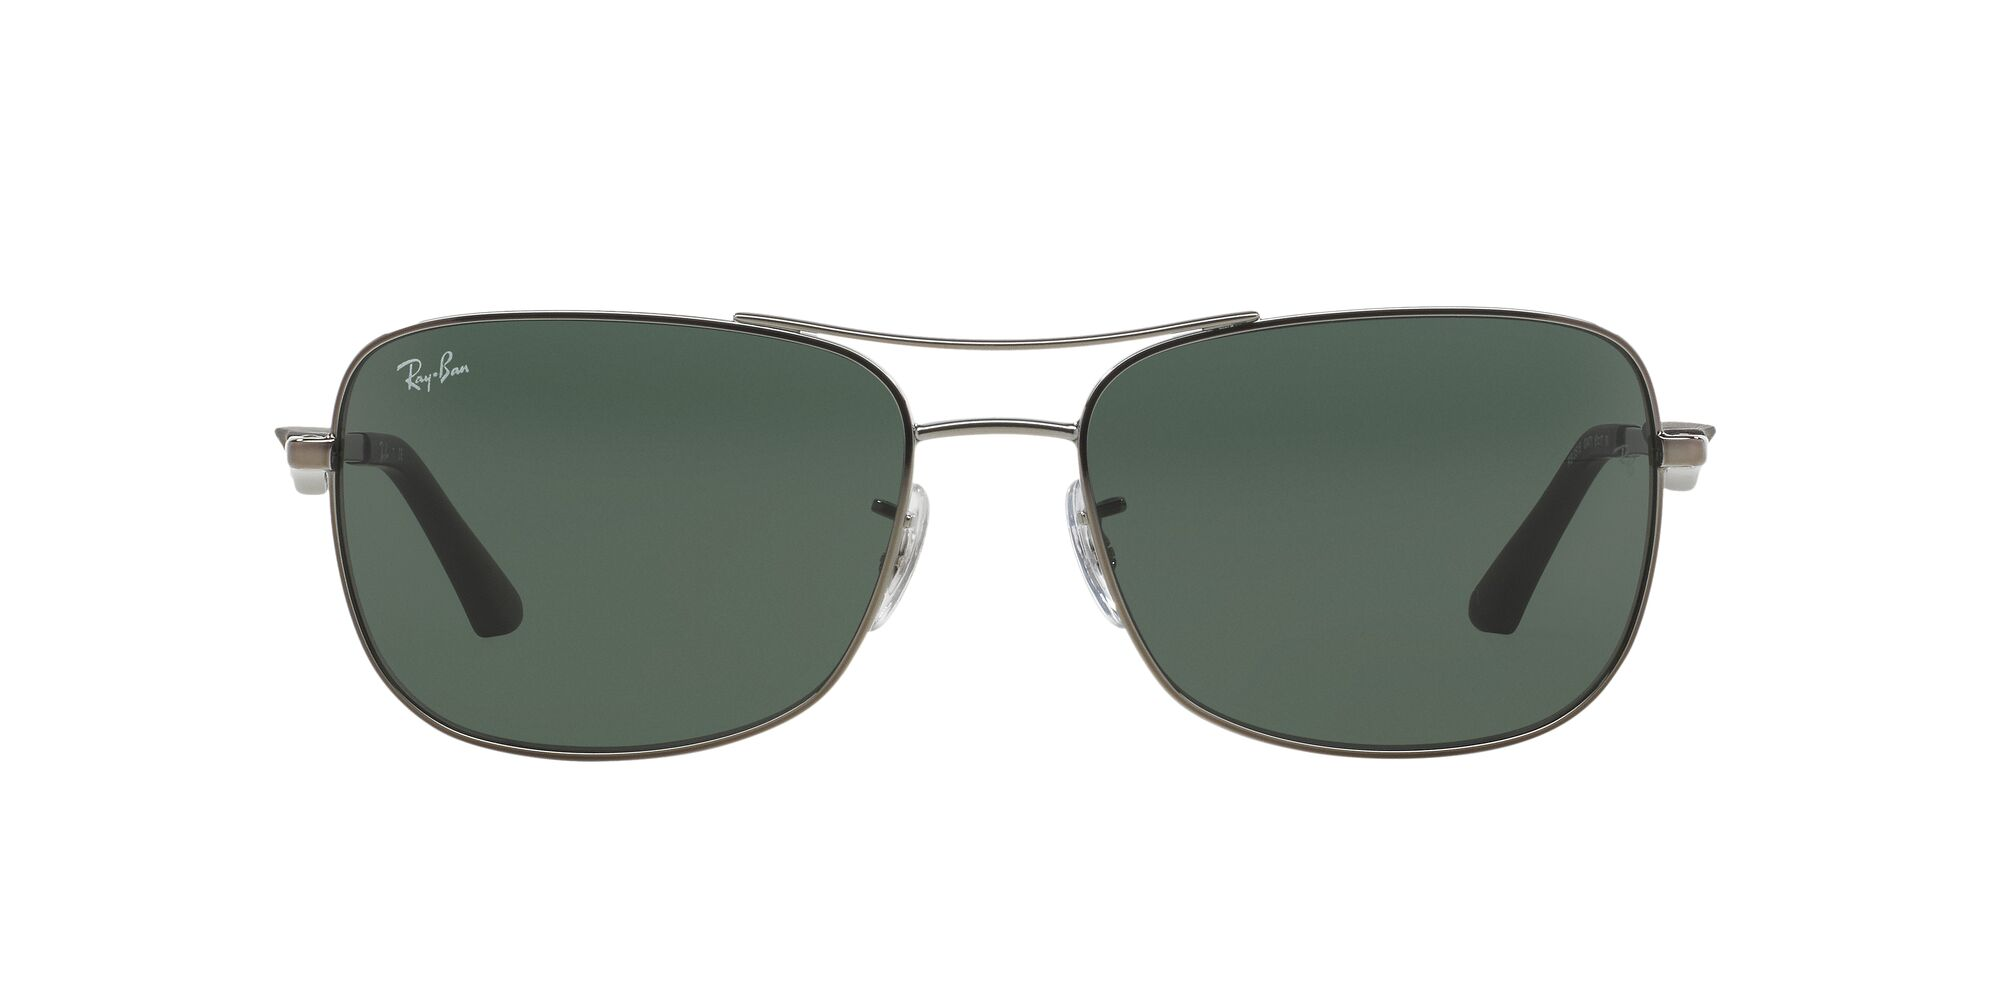 Front Ray-Ban Ray-Ban 0RB3515 004/71 61/17 Grijs/Groen